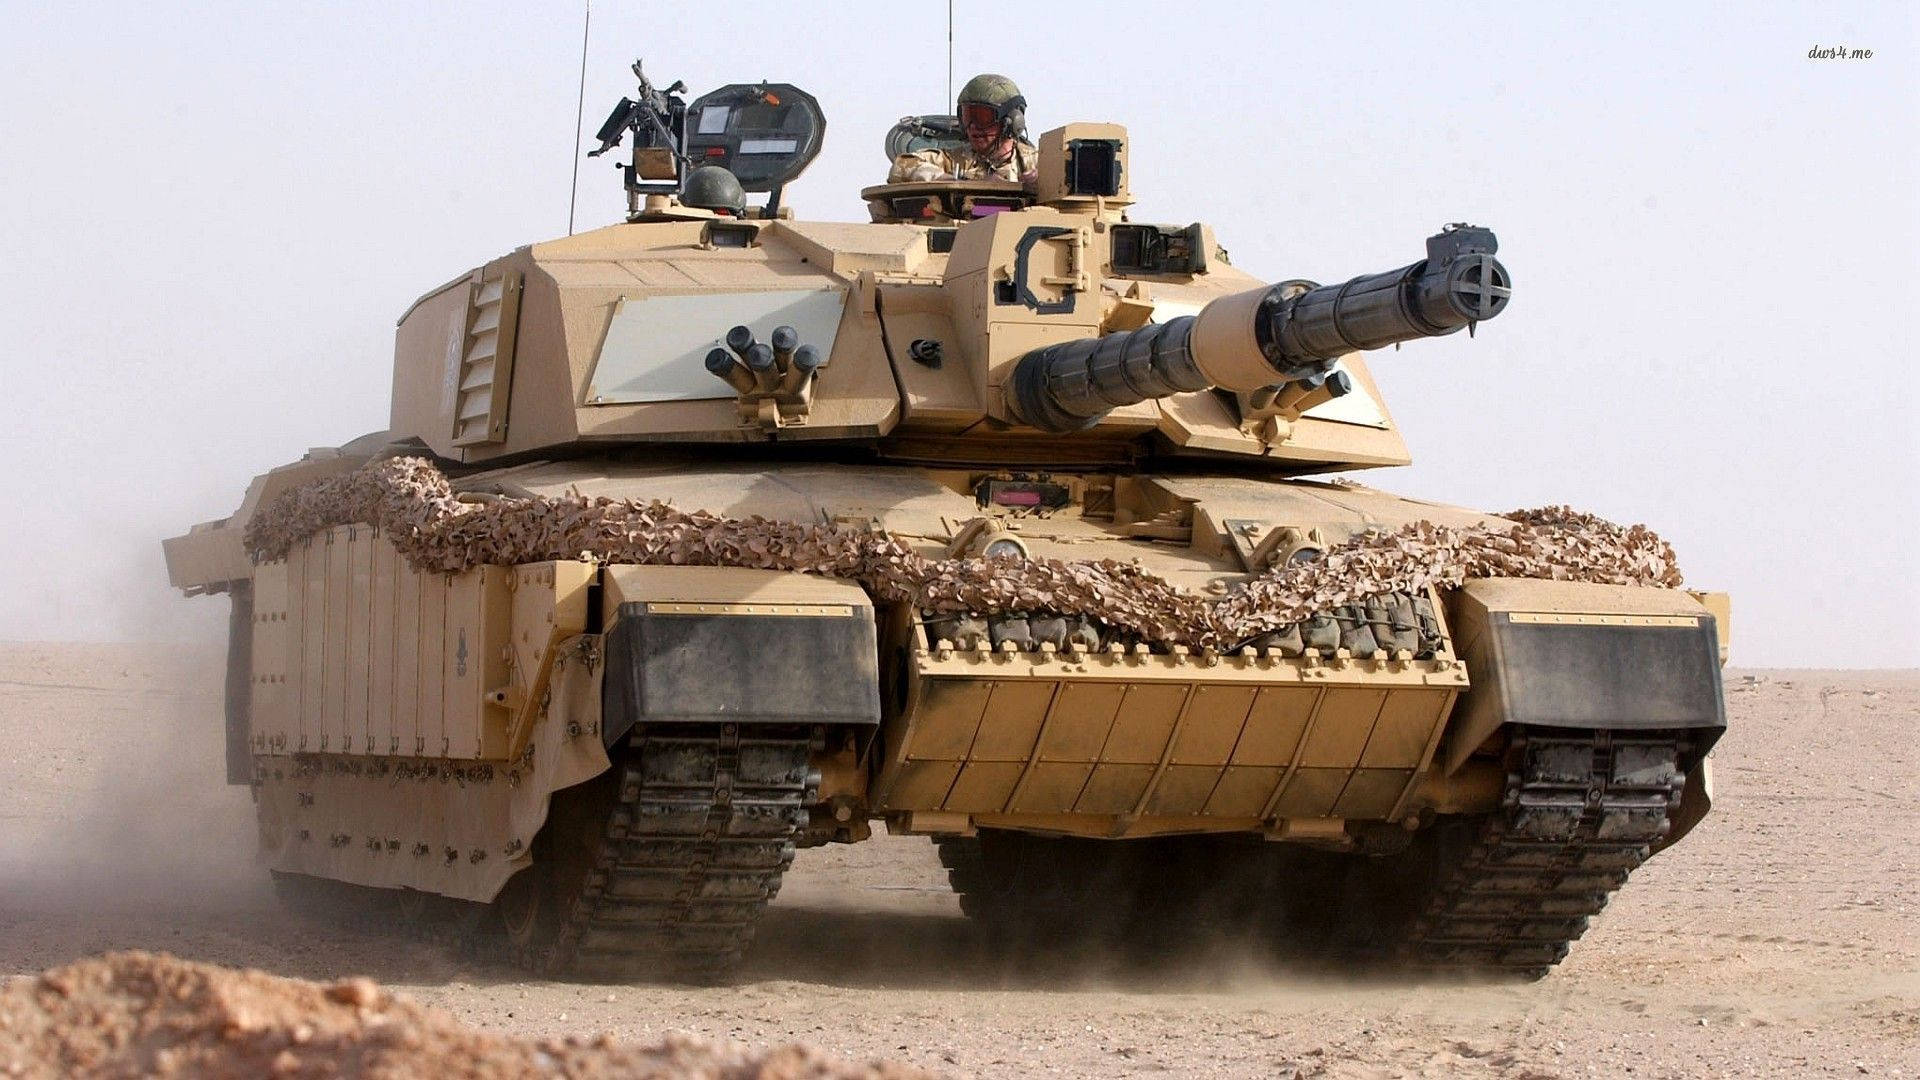 Challenger 2 tank HD wallpaper | Tanks military, Army tanks, Army vehicles